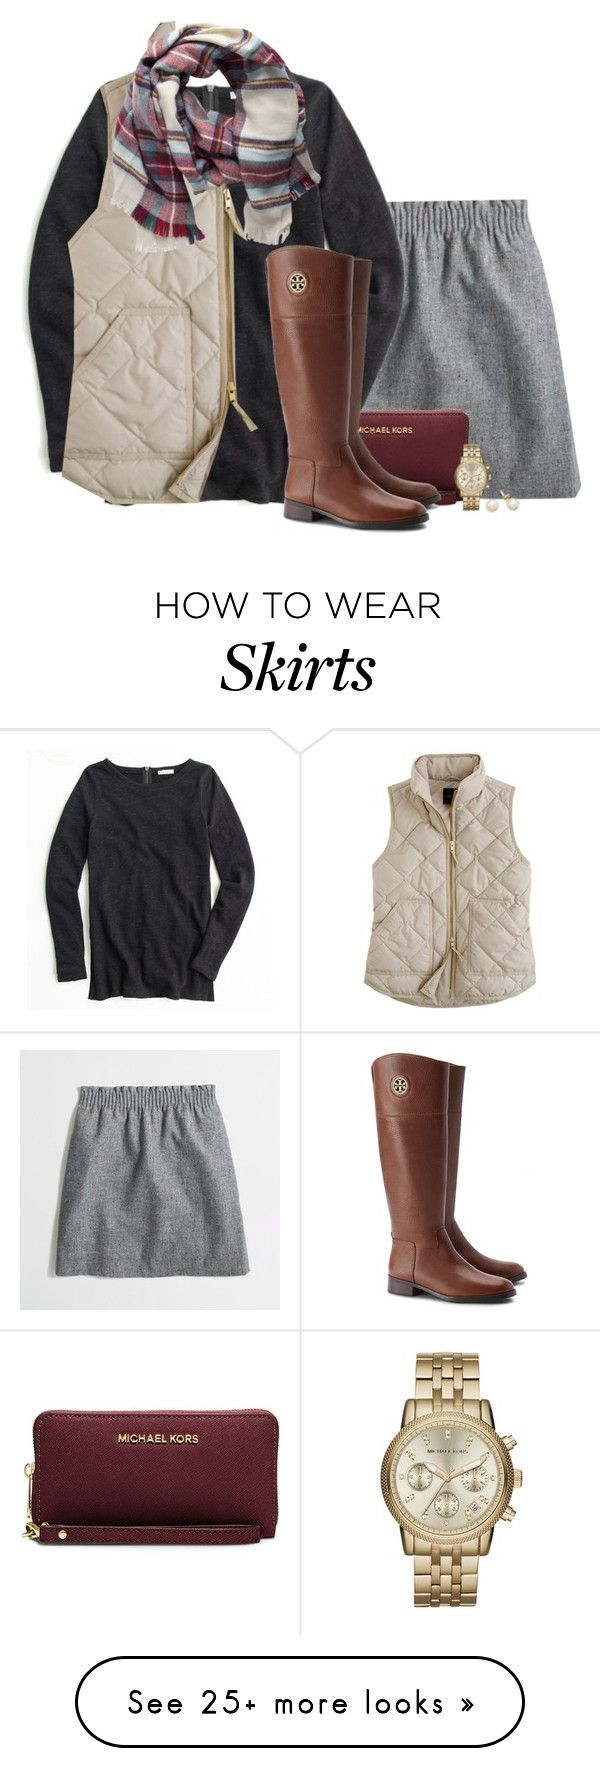 """Cream vest, gray skirt, plaid scarf"" by steffiestaffie on Polyvore featuring J.Crew, MICHAEL Michael Kors, Pieces, Tory Burch and Michael Kors"